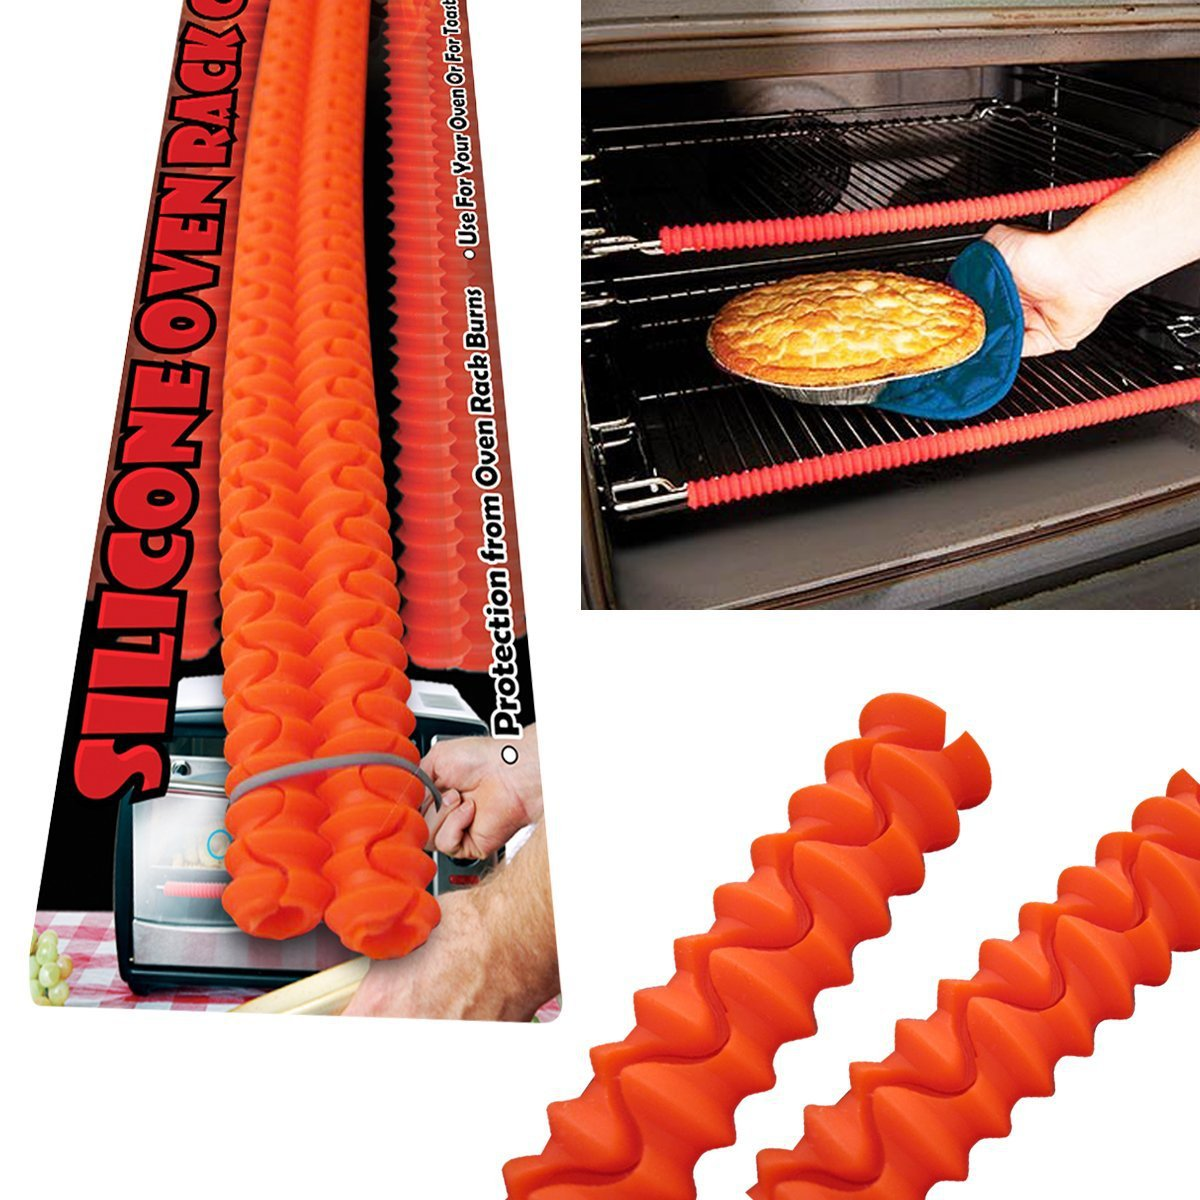 Honana KC-020 Enipate Silicone Oven Rack Edge Guards Protector Clip Guard Baking & Pastry Tools Heat Resistant Red Avoid Burns